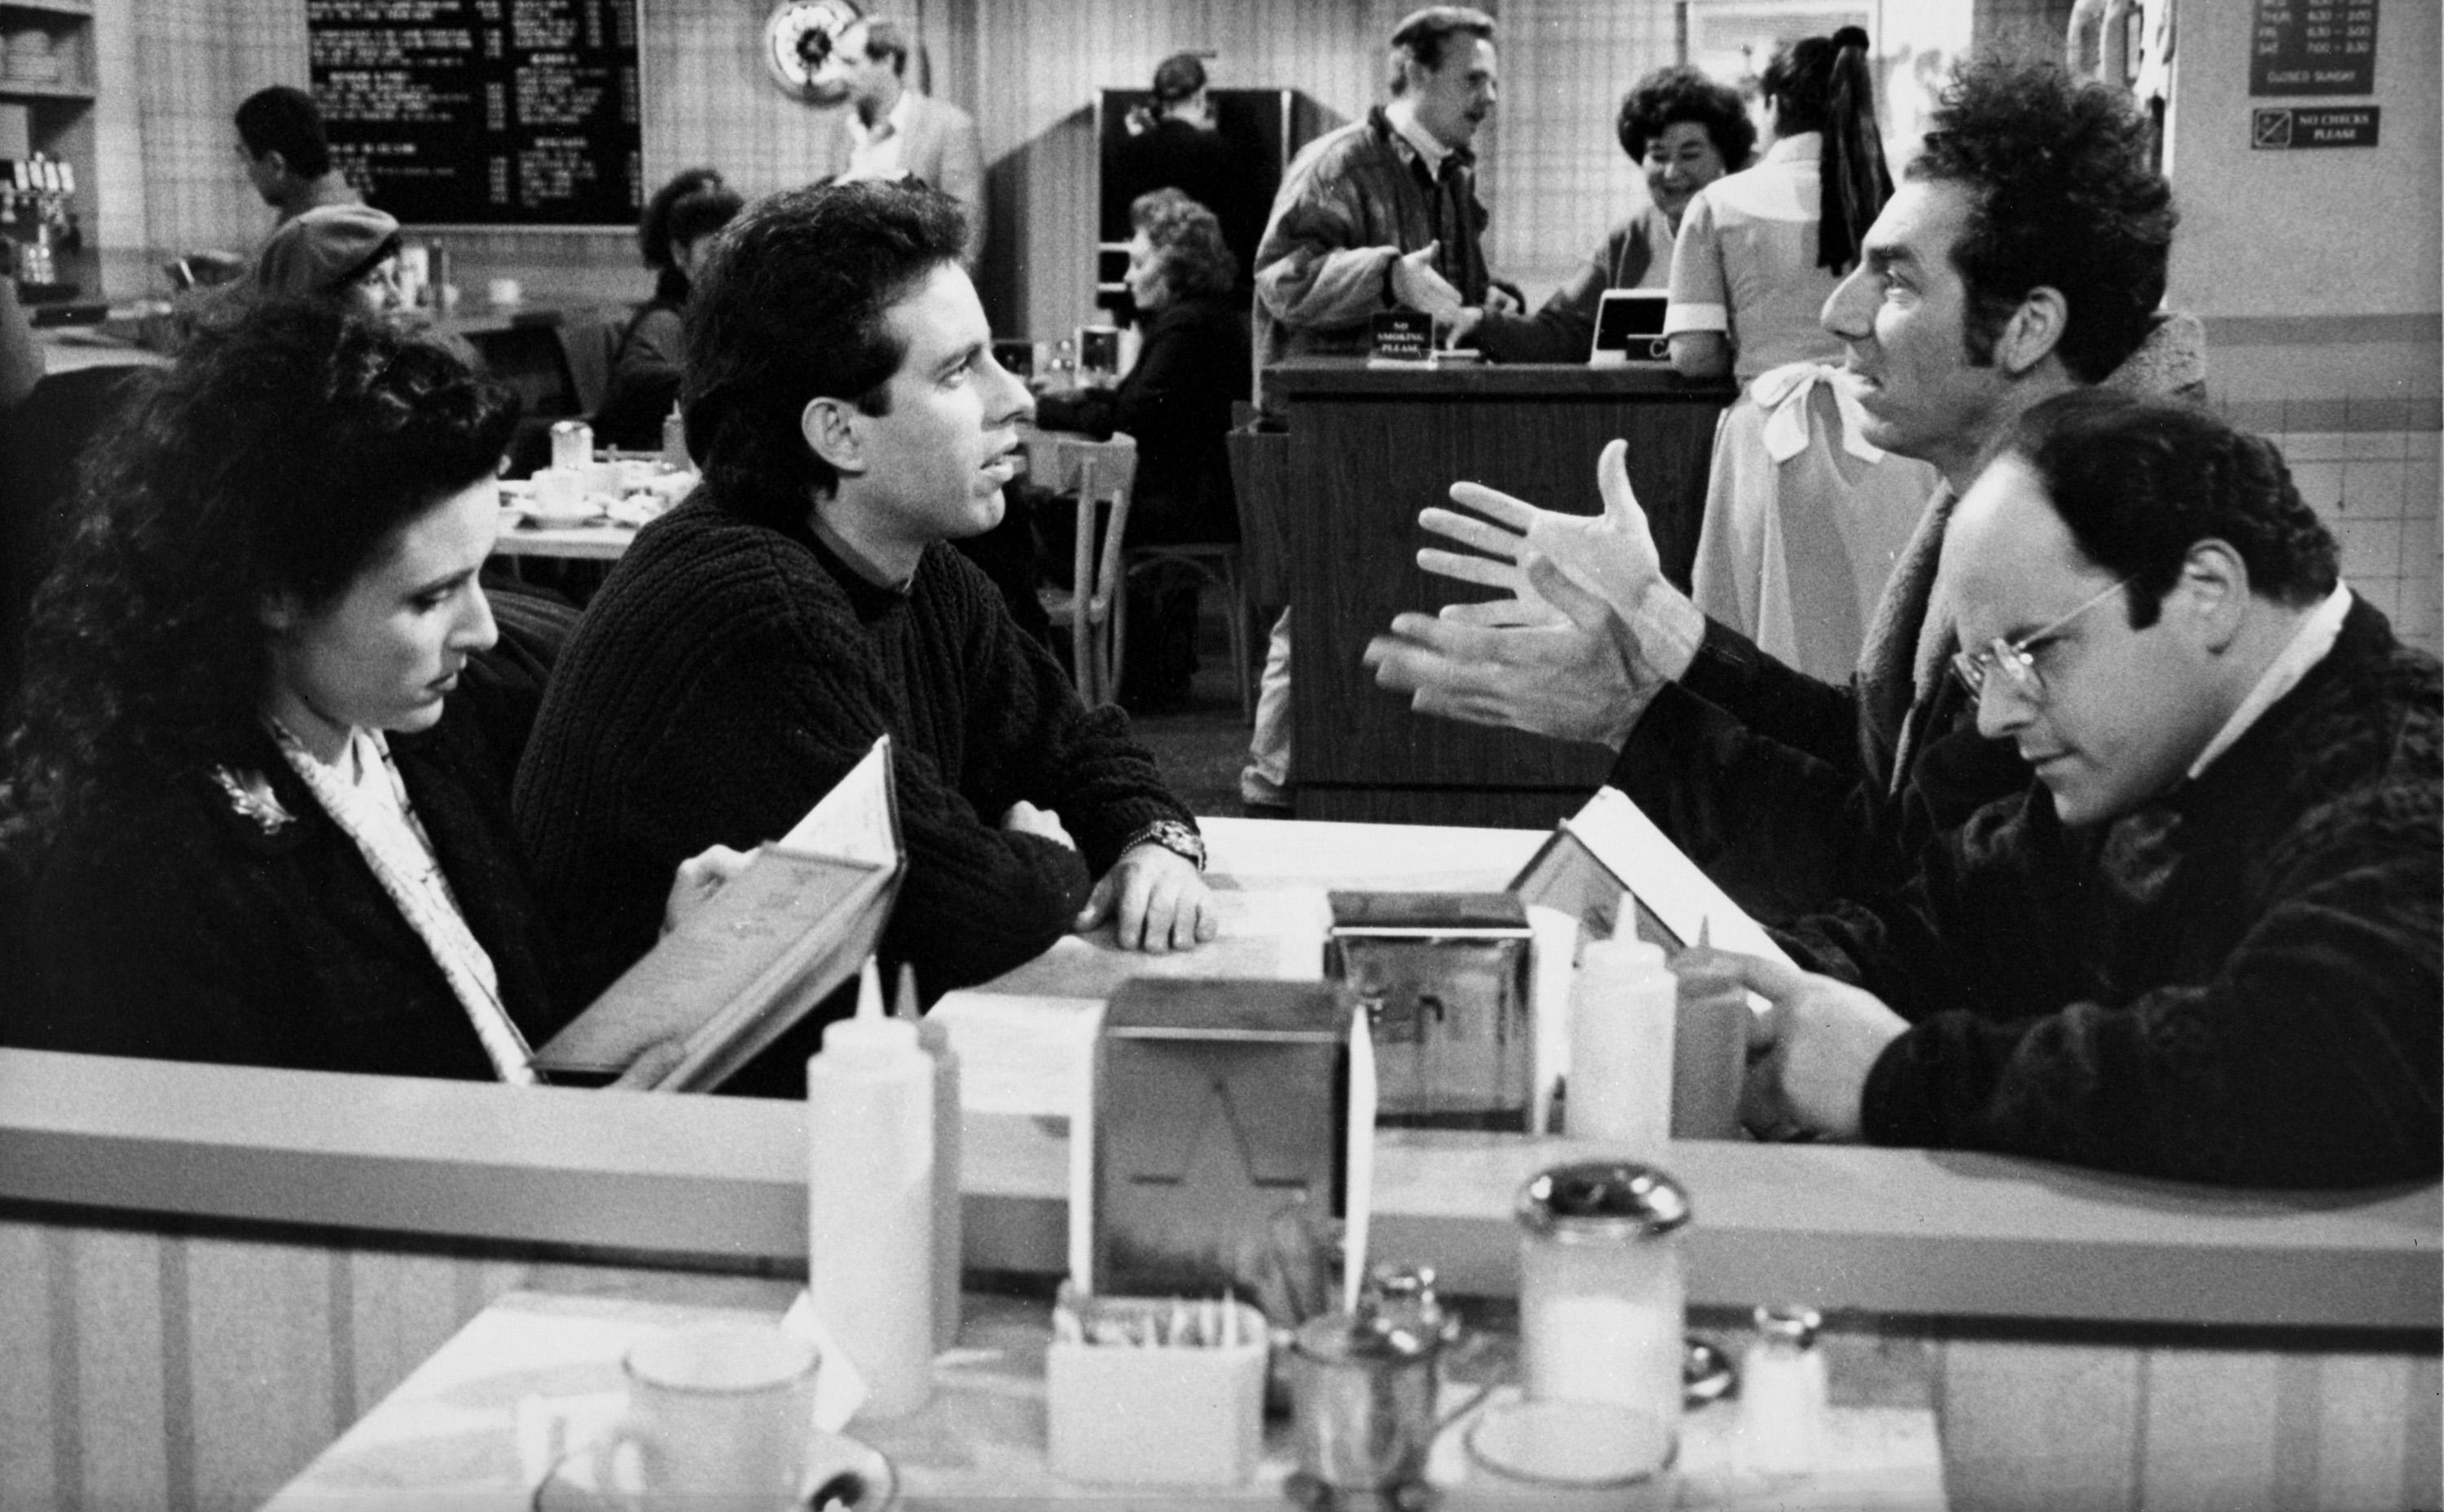 """SEINFELD -- """"The Kiss Hello"""" Episode 17 -- Pictured: (l-r) Julia Louis-Dreyfus as Elaine Benes, Jerry Seinfeld as himself, Michael Richards as Cosmo Kramer, Jason Alexander as George Costanza (Photo by Carin Baer/NBCU Photo Bank/NBCUniversal via Getty Images via Getty Images)"""